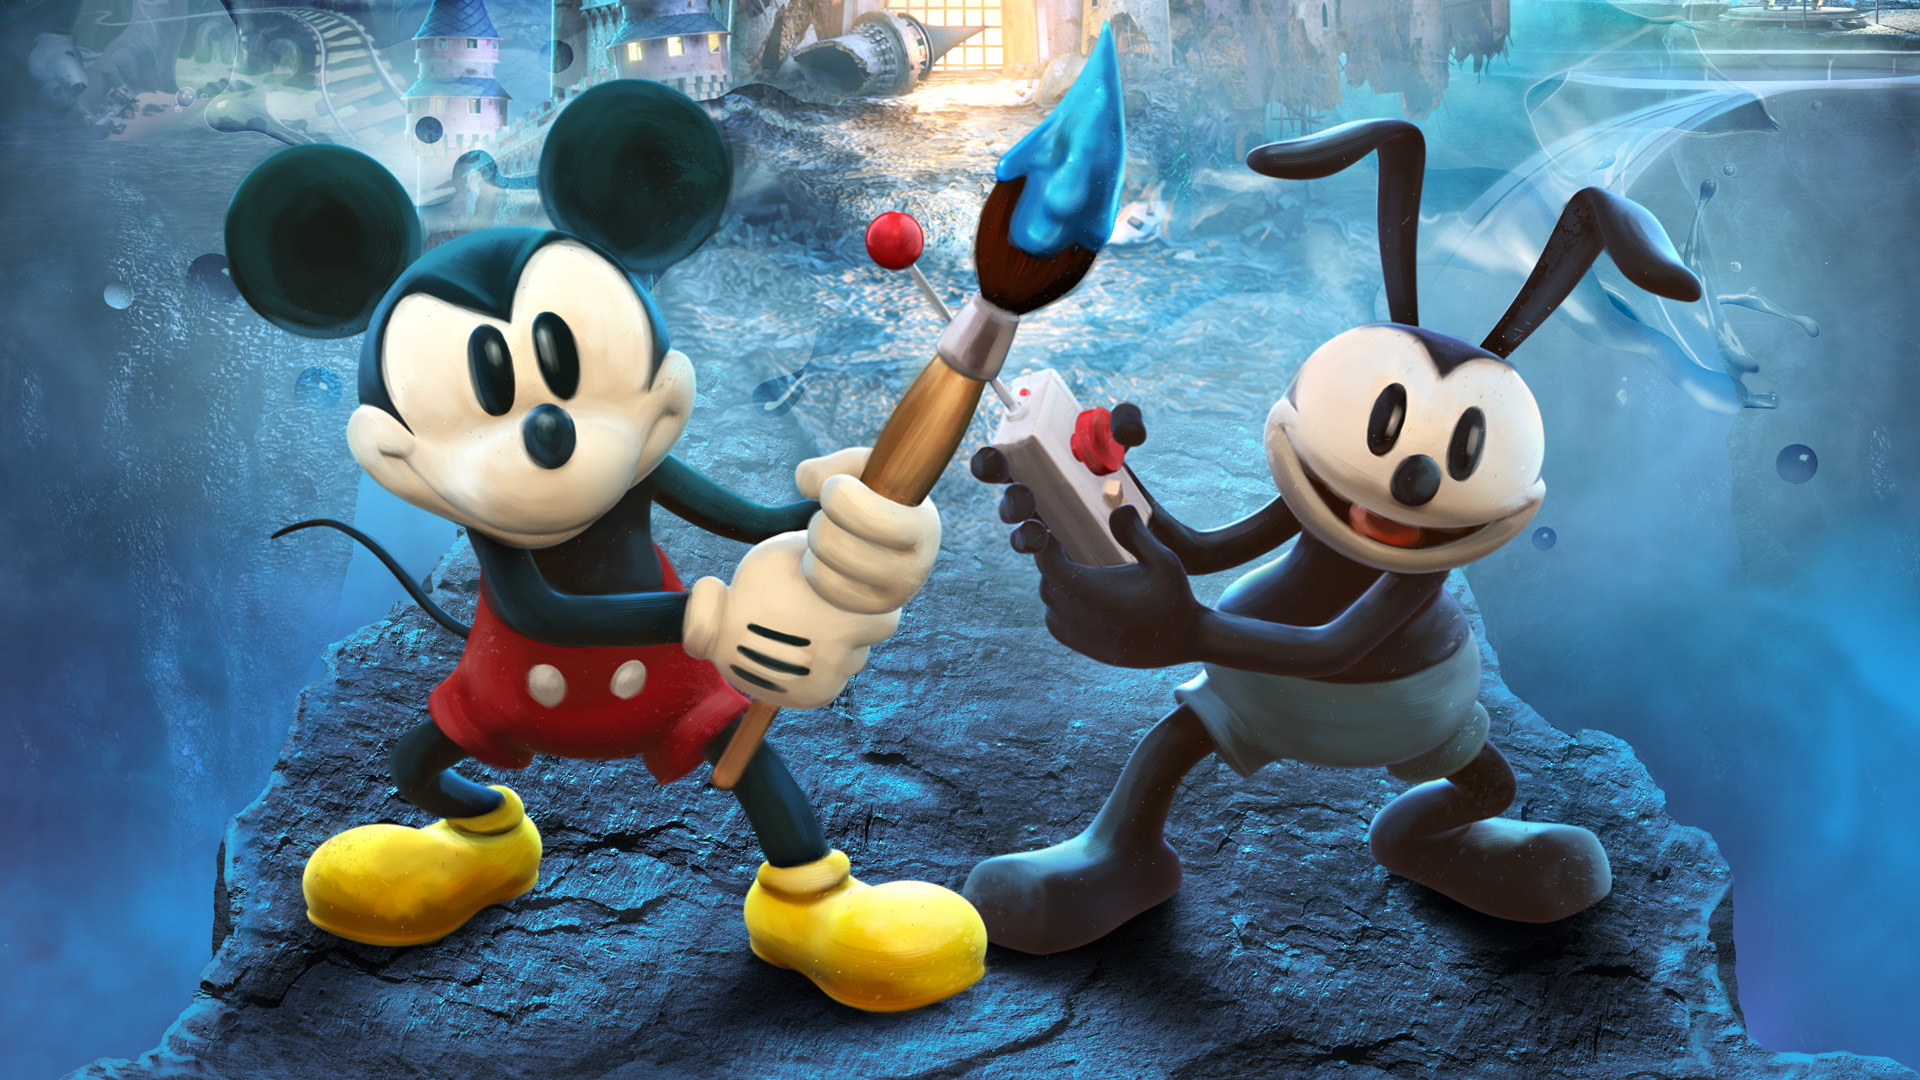 Epic Mickey 2: The Power of Two Wallpaper in 1920x1080